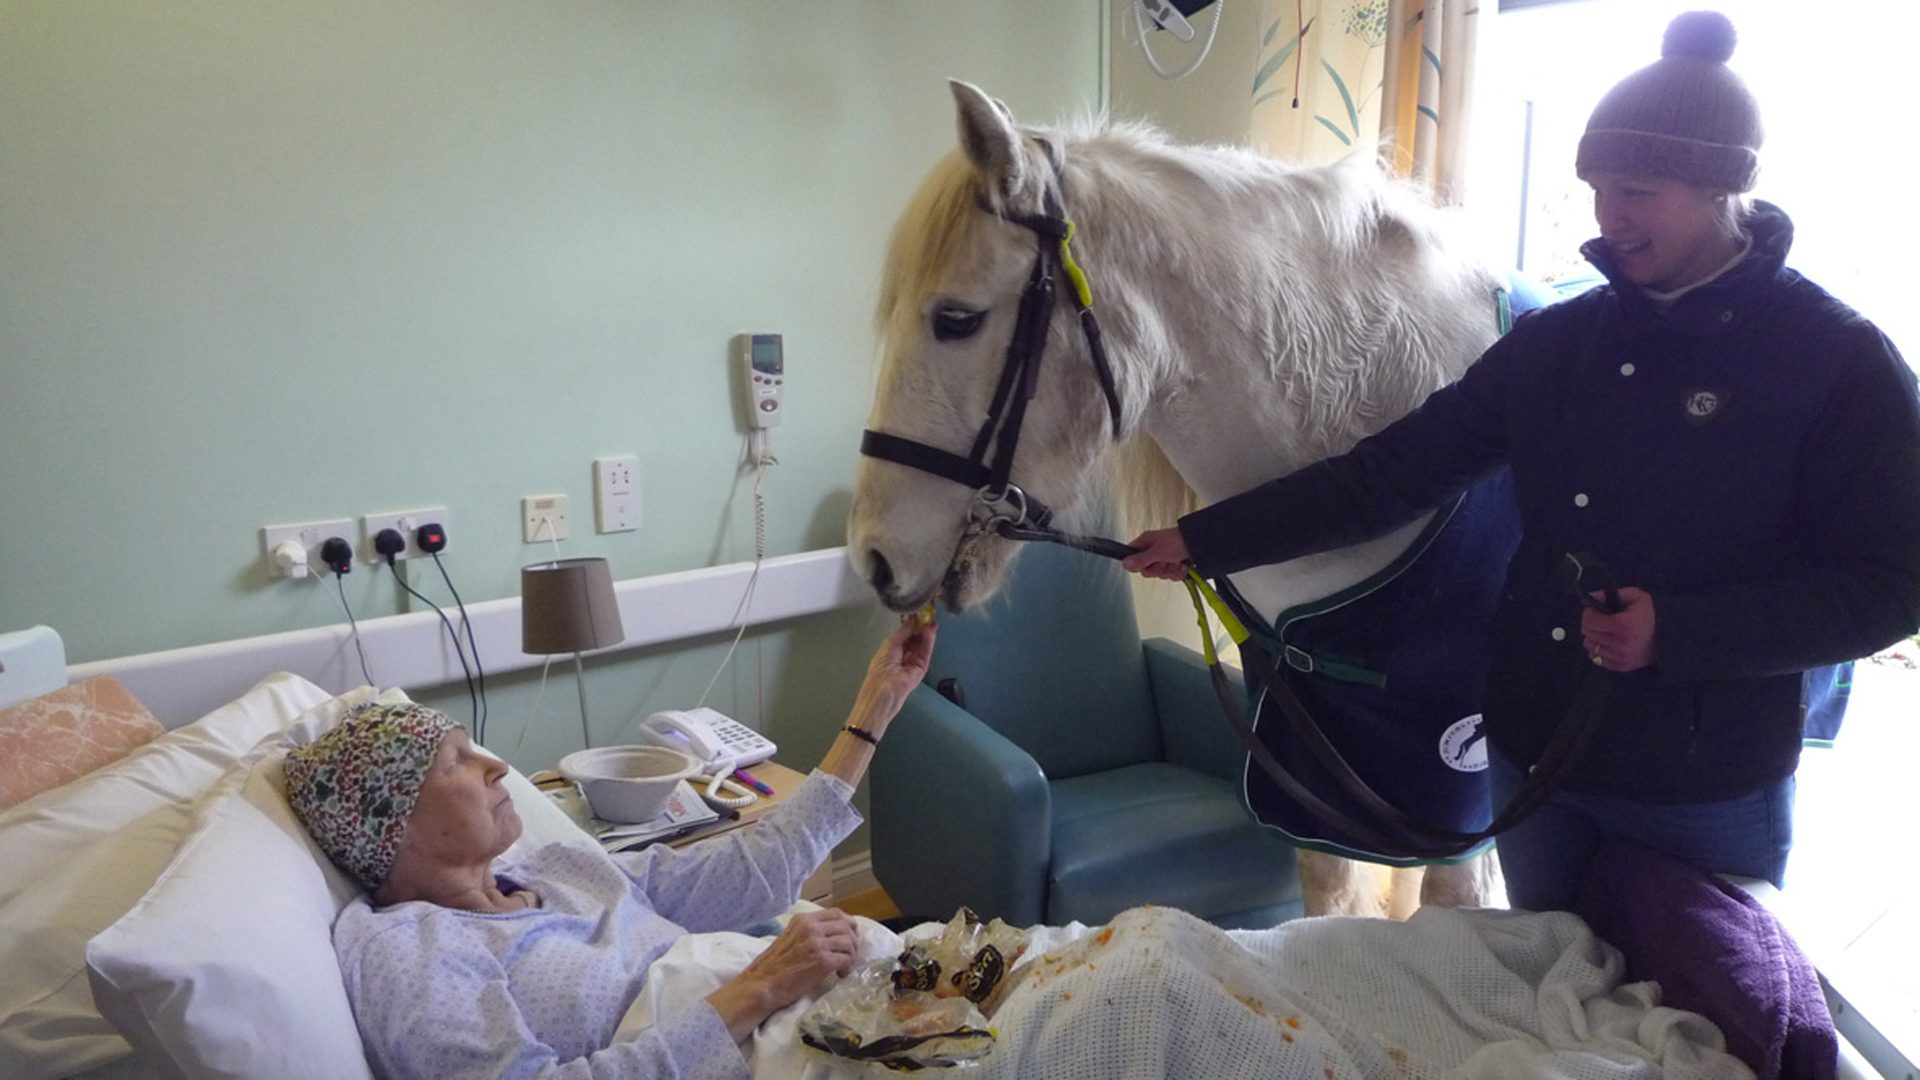 Horse visiting a patient in the Inpatient Unit at Winsley